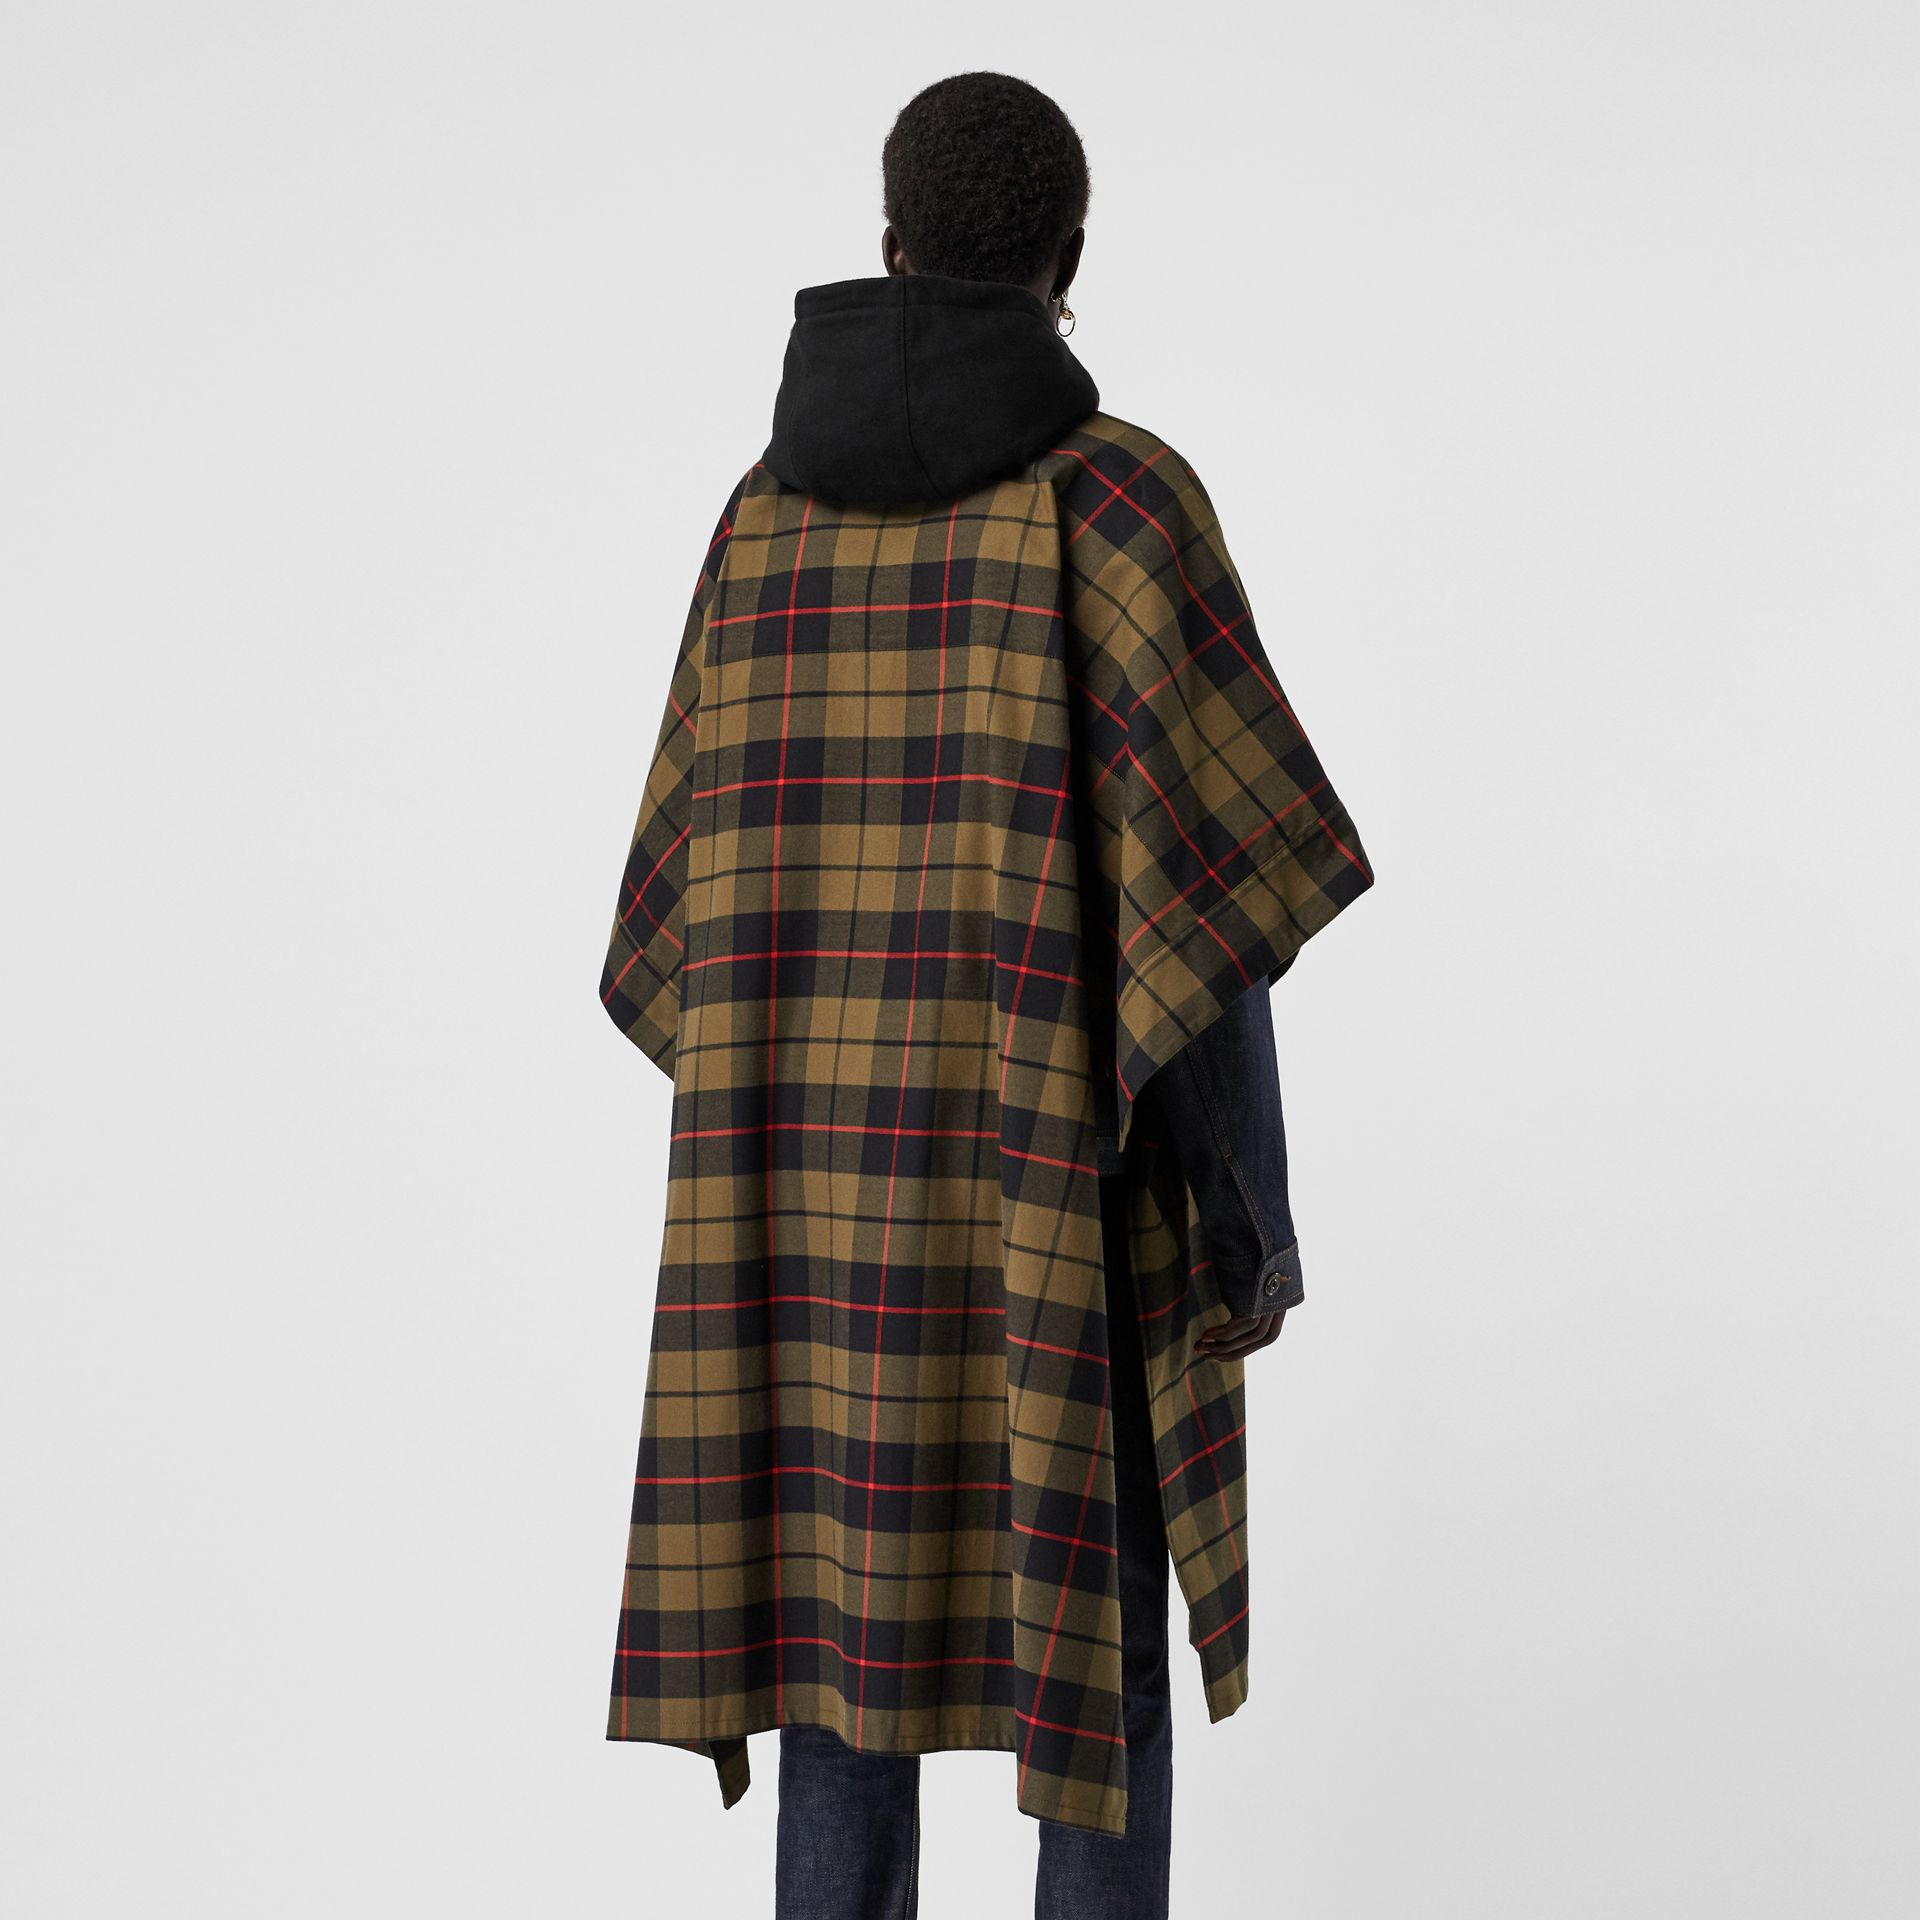 Monogram Motif Check Cotton Oversized Poncho in Military Olive | Burberry Hong Kong - gallery image 6